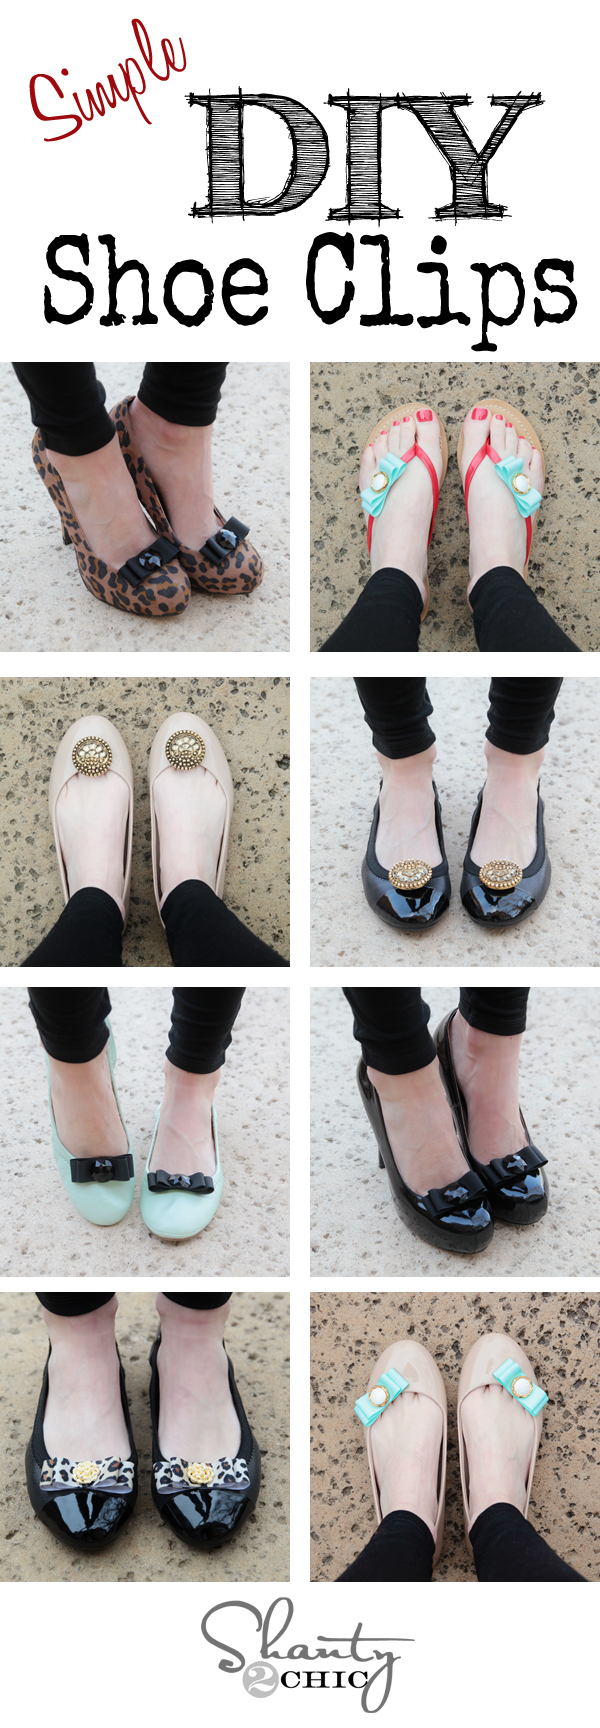 Shoe Clips Pinterest